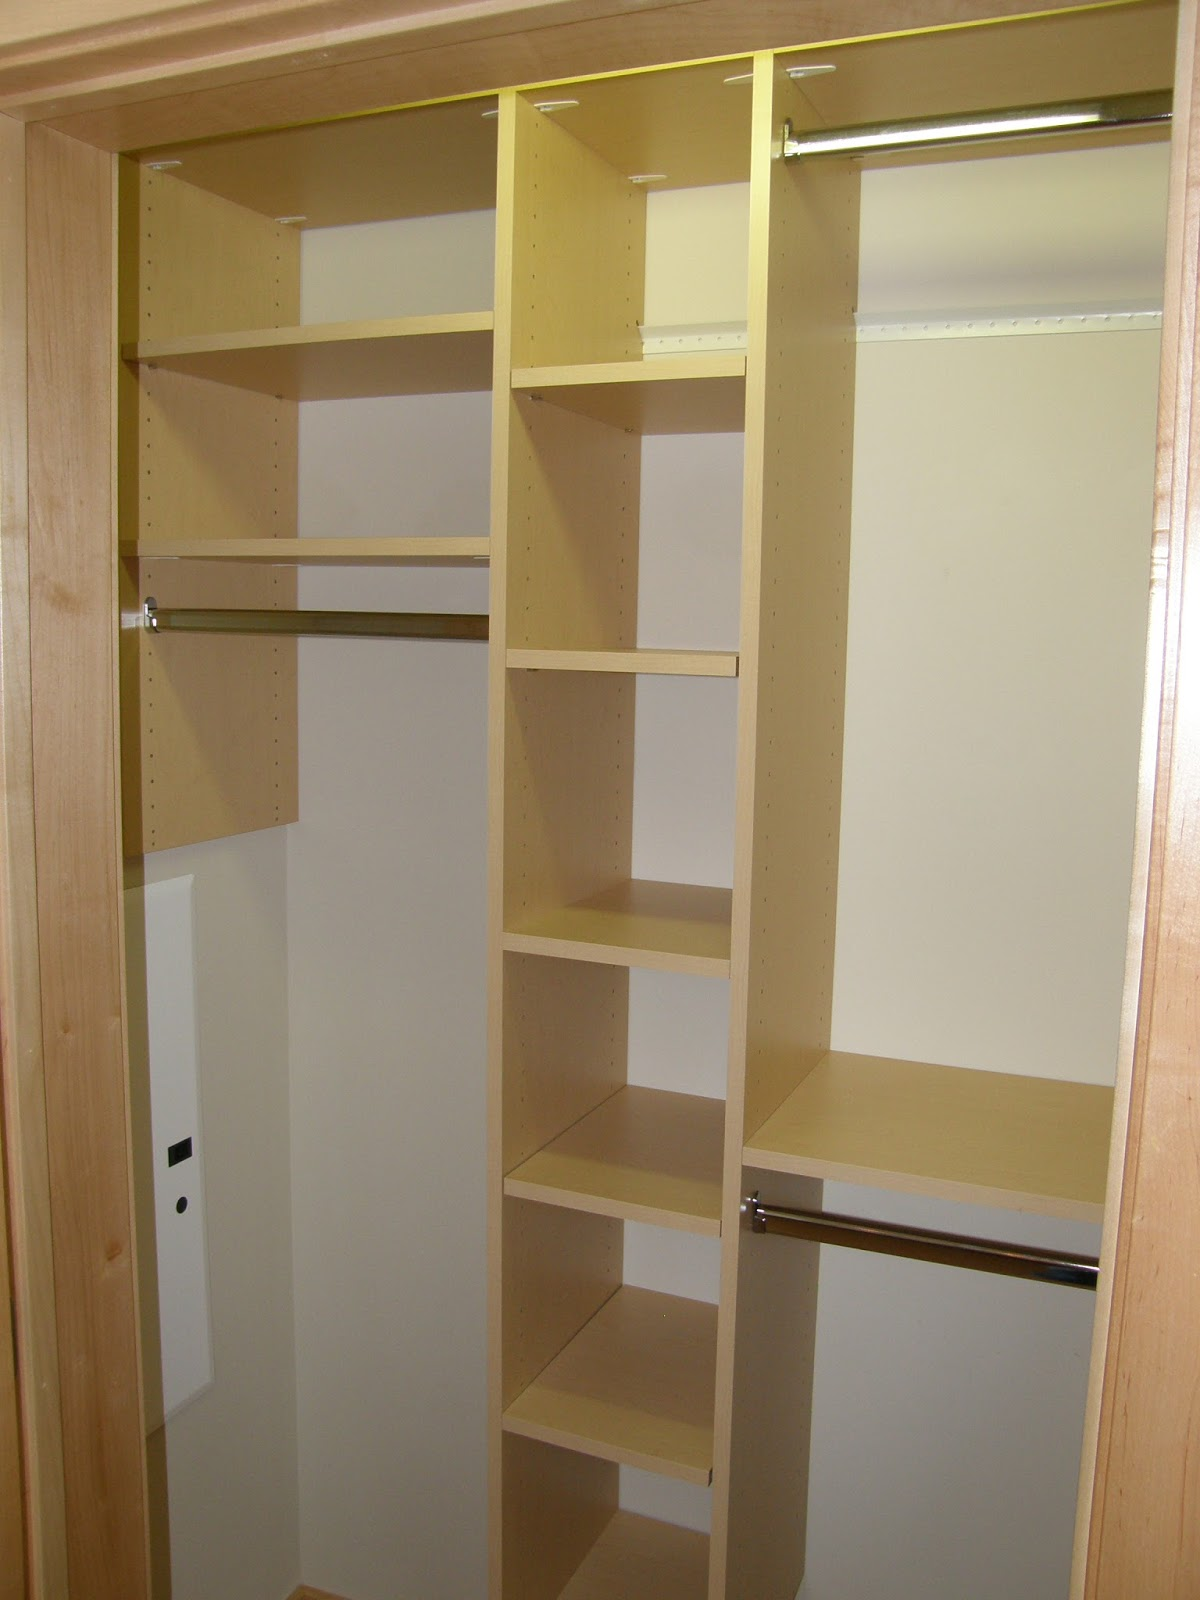 Closets for life ideas for a better coat closet - Bedroom wall closet designs ...